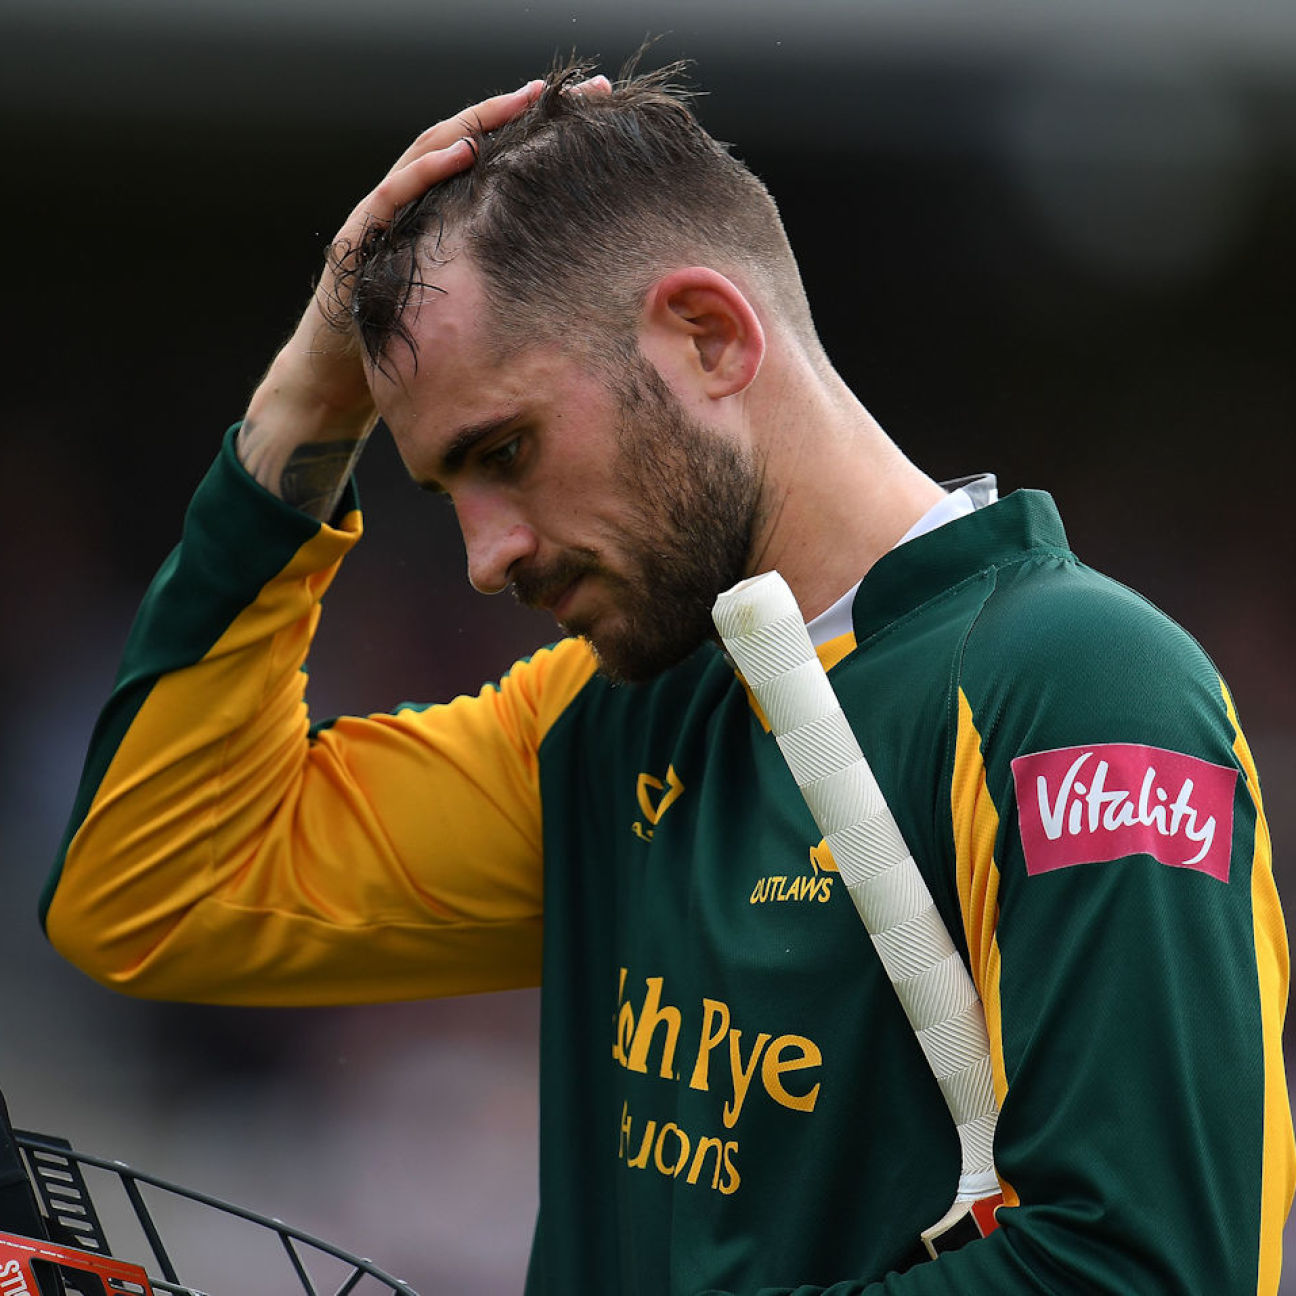 Alex Hales dropped from England's World Cup squad following drugs ban